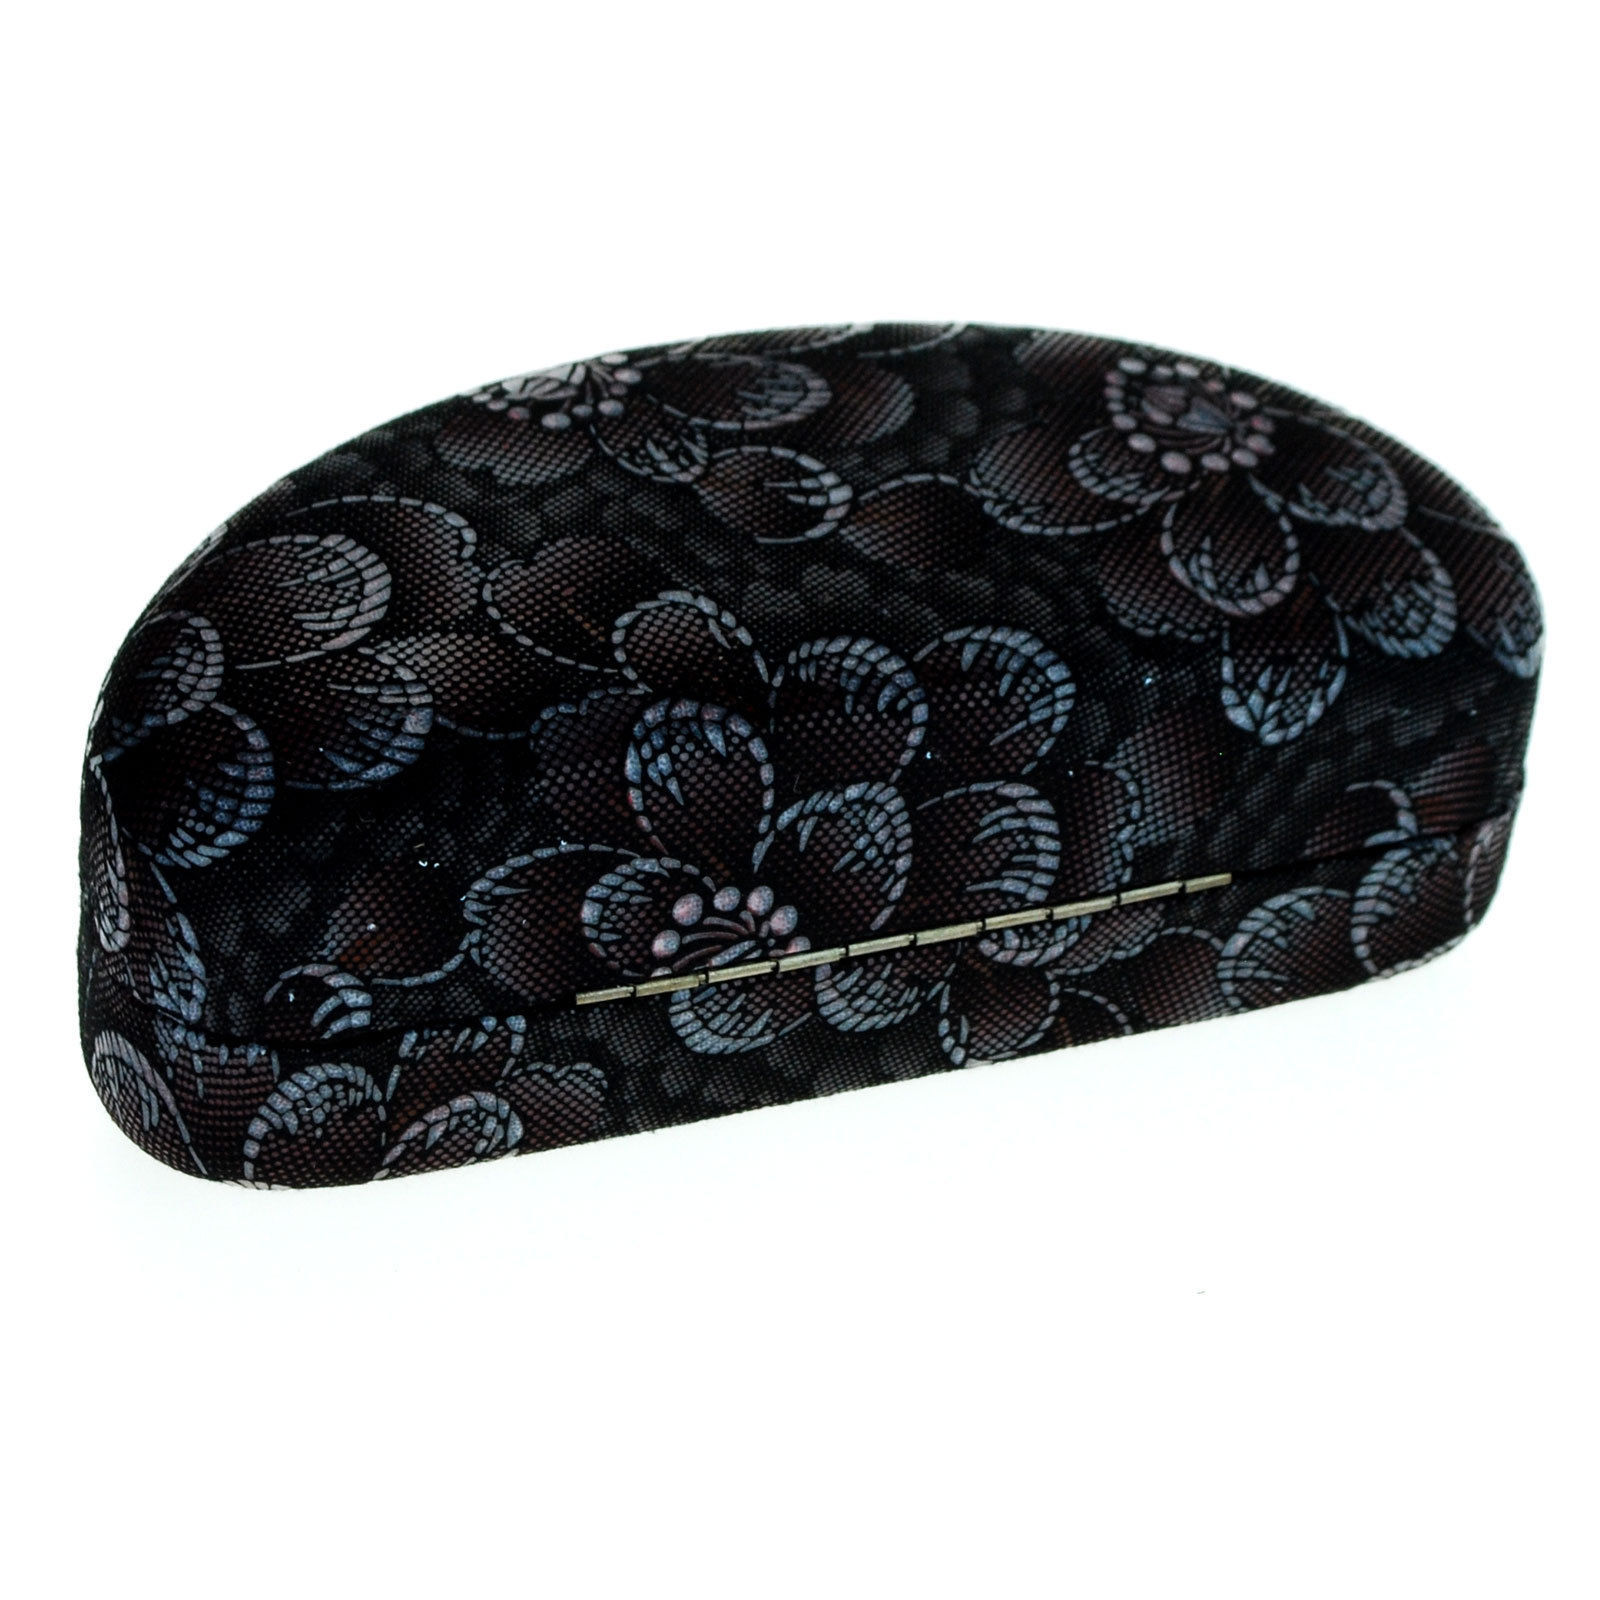 Sunglasses & Eyeglasses Protective Hard Case Soft Fabric Floral Print